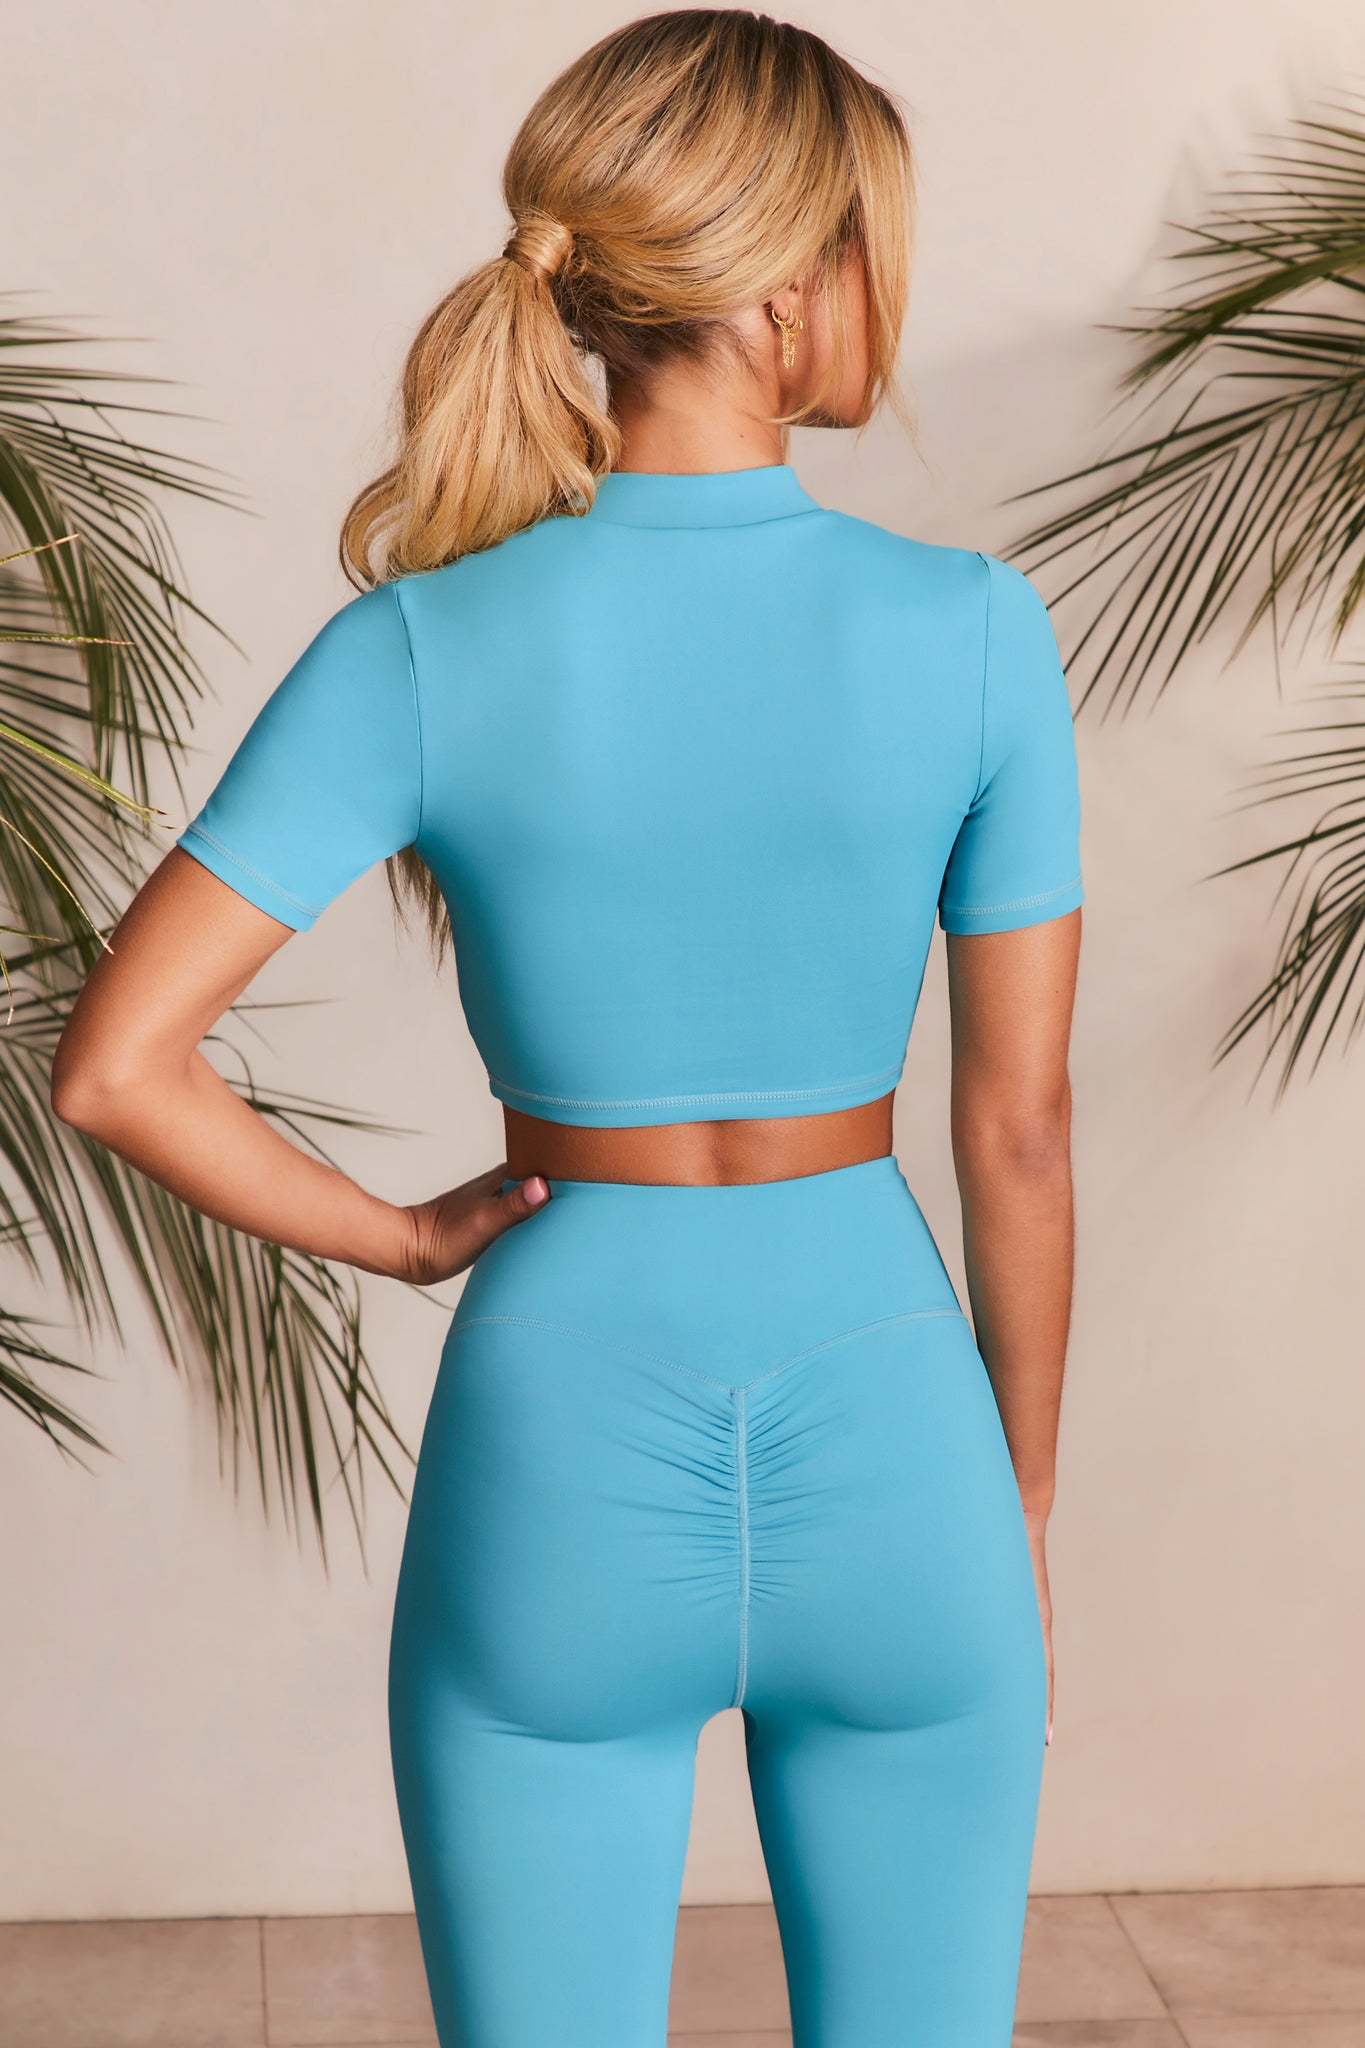 High neck crop top in aqua with short sleeves. Image 3 of 6.